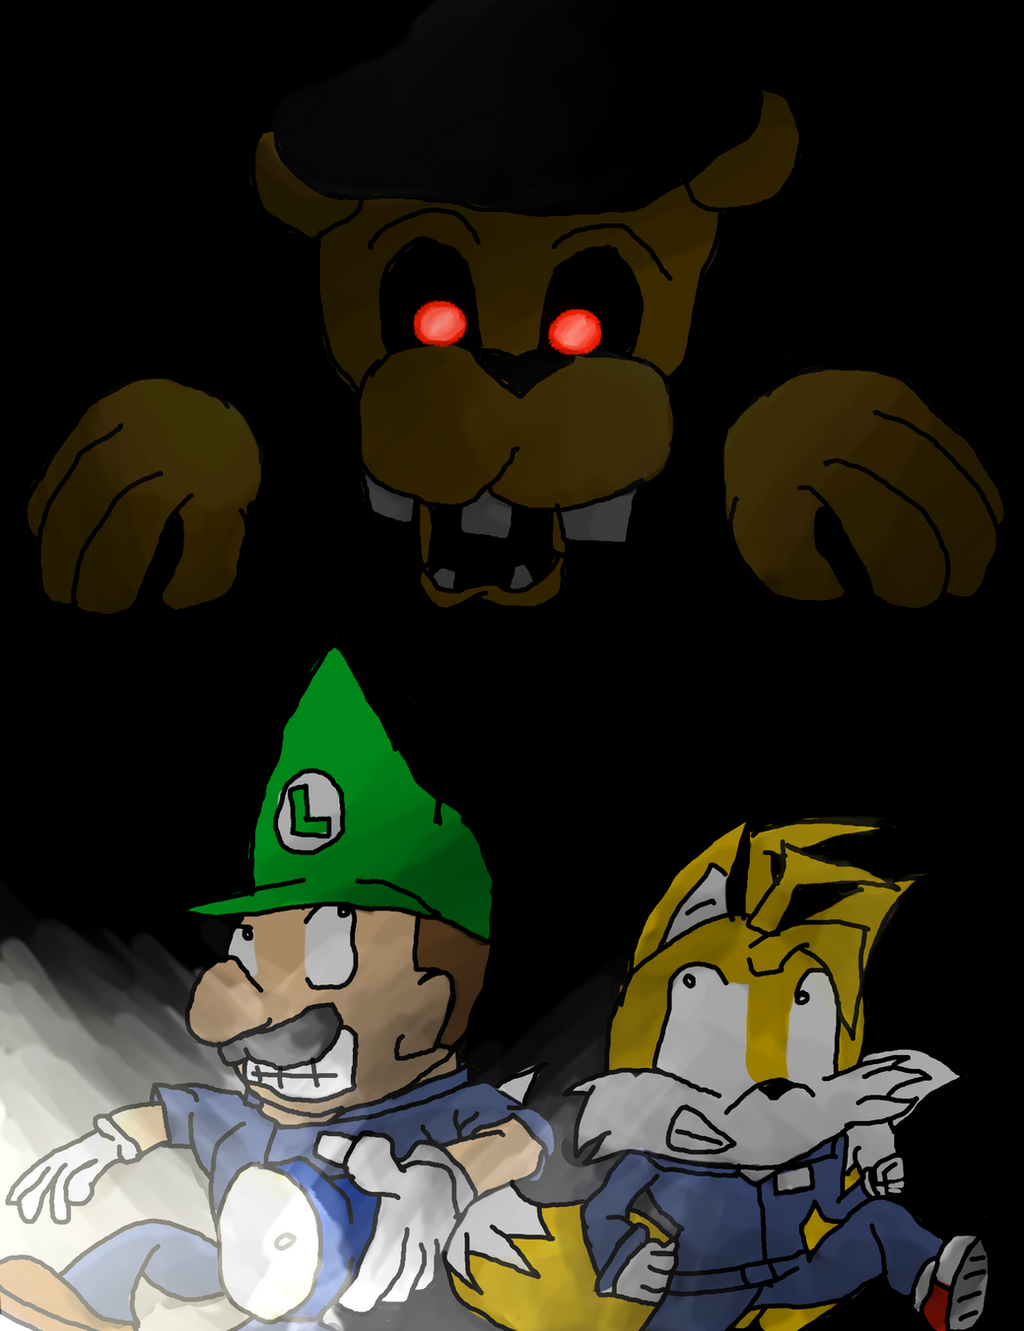 Luigi and tails in fnaf by thesimpleartist4 on deviantart